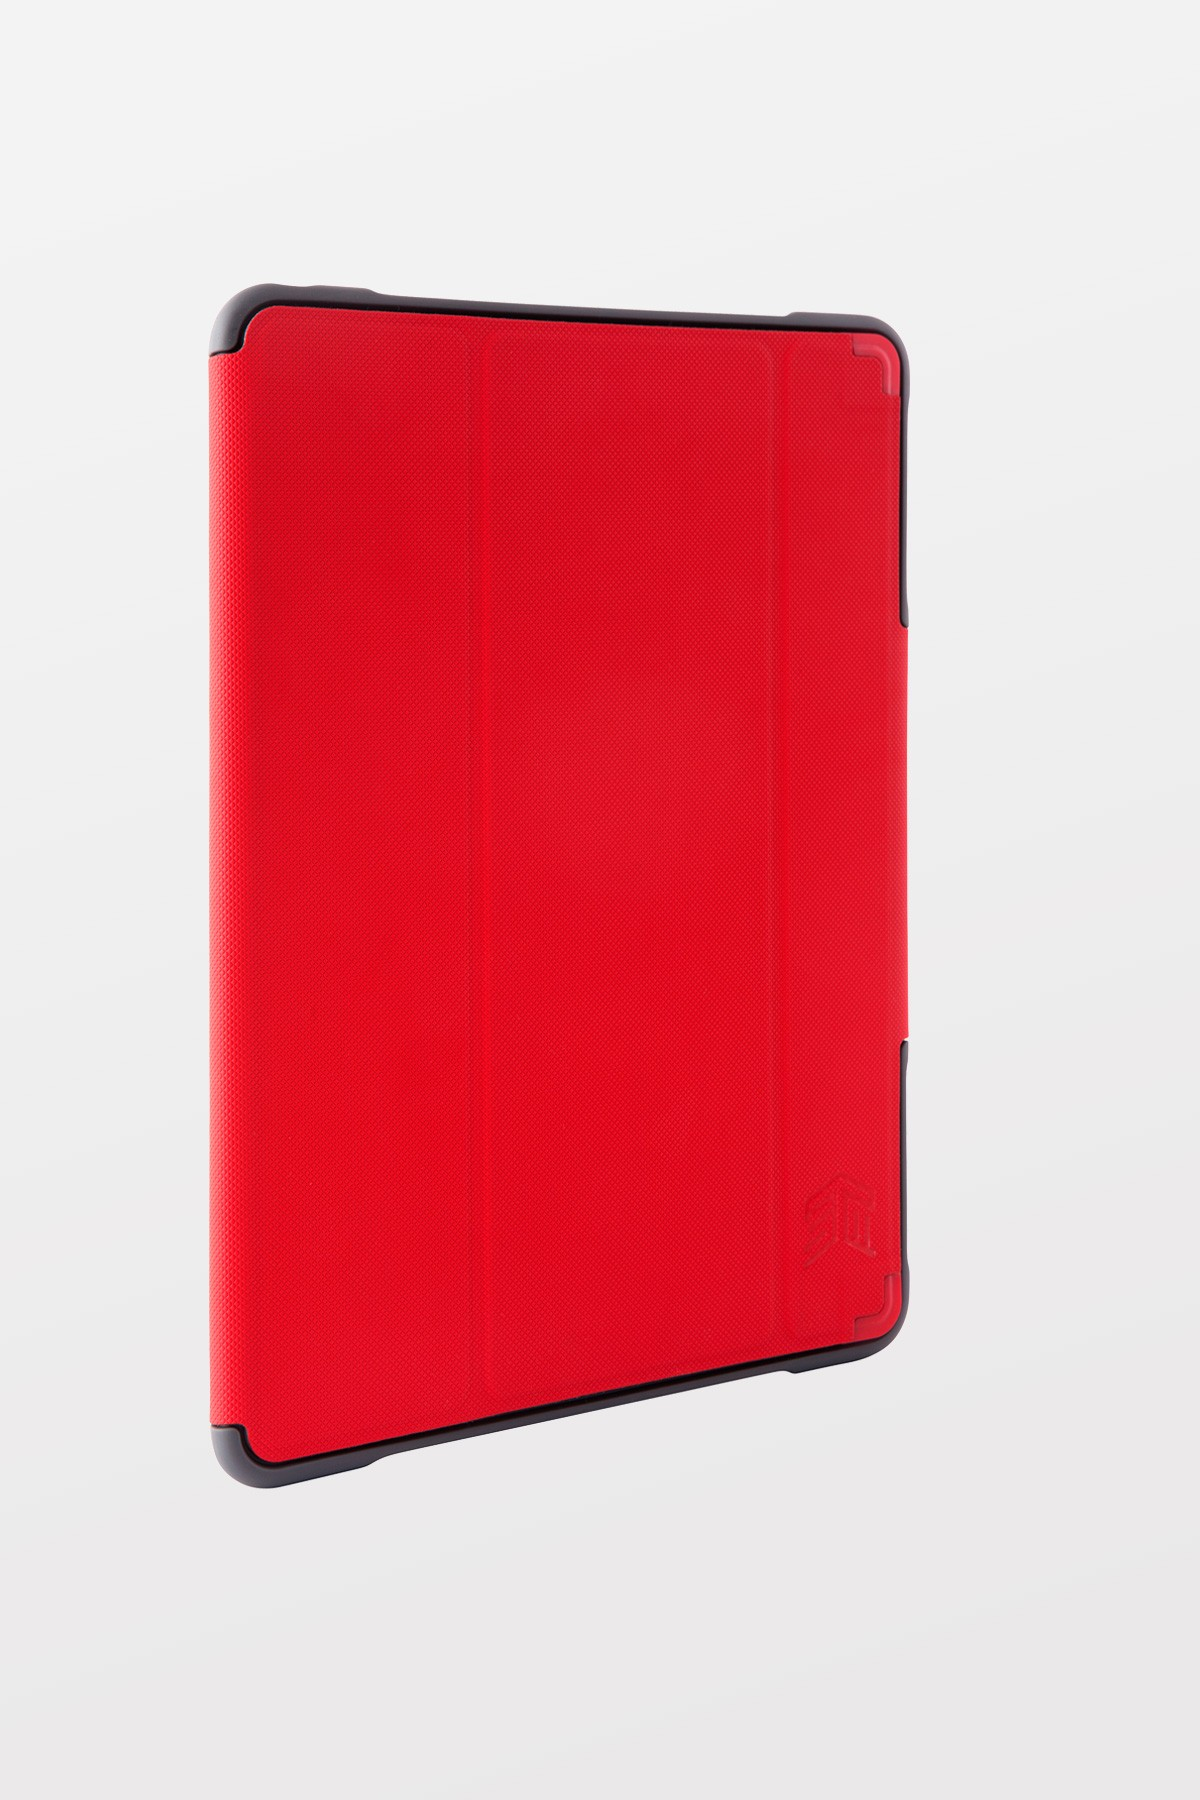 STM Dux for iPad Mini 1-3 - Red